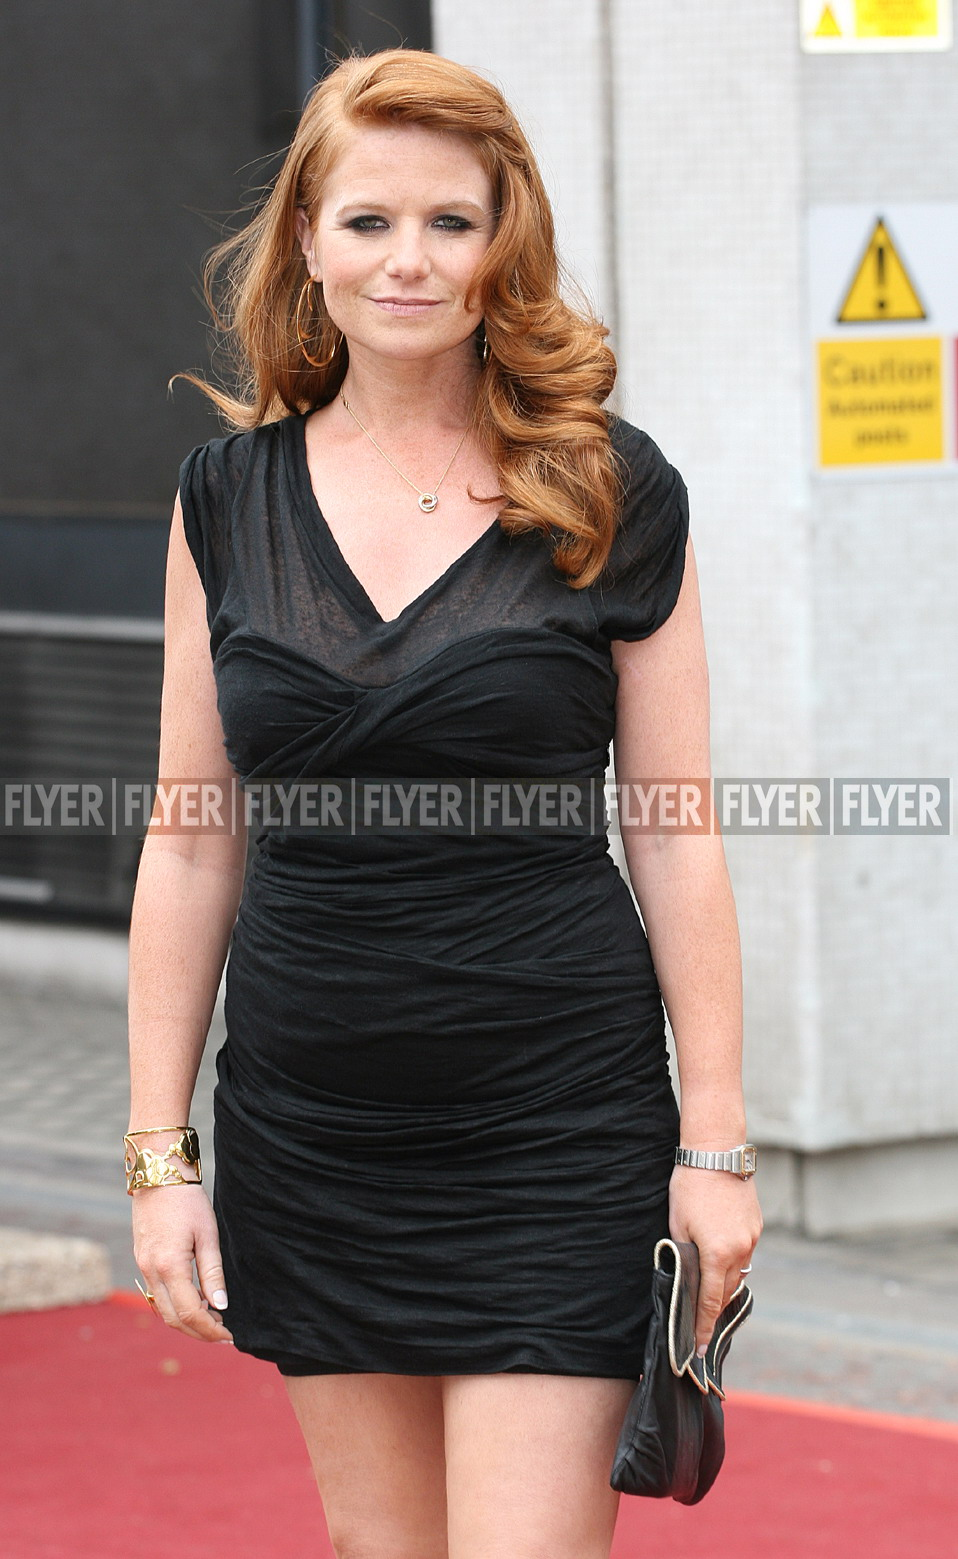 Patsy Palmer (born 1972) naked (27 foto and video), Pussy, Cleavage, Instagram, butt 2017